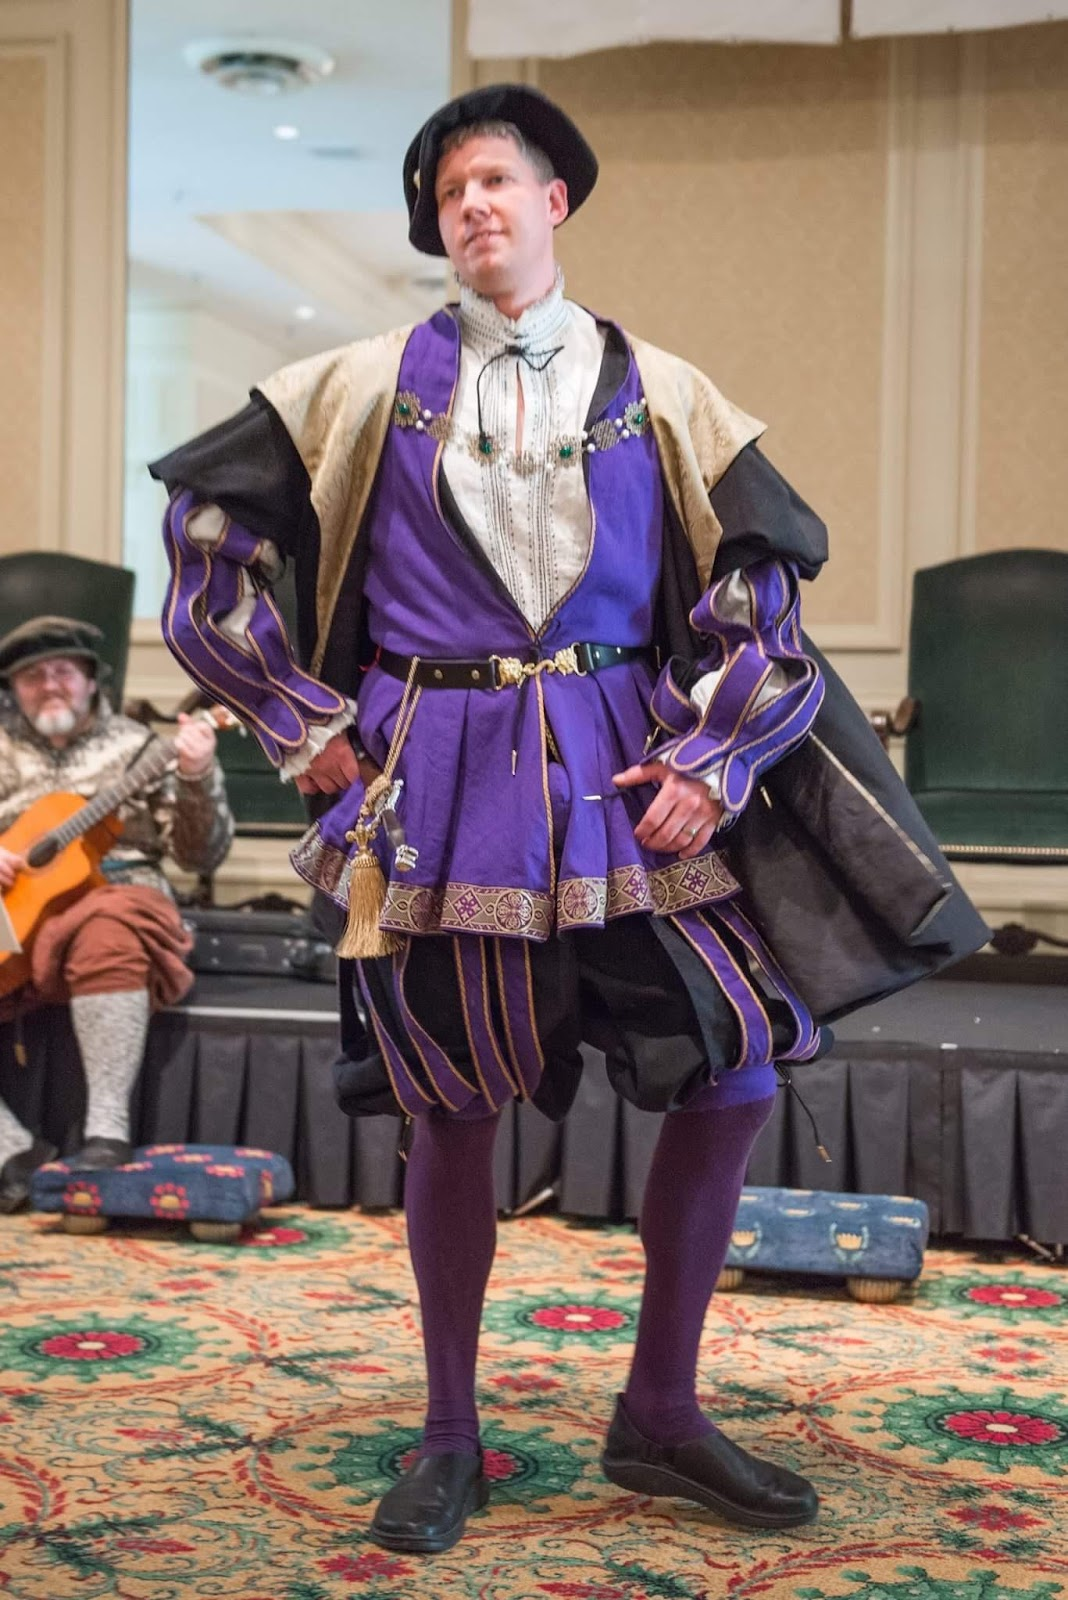 Performing in Costume - American Recorder Society